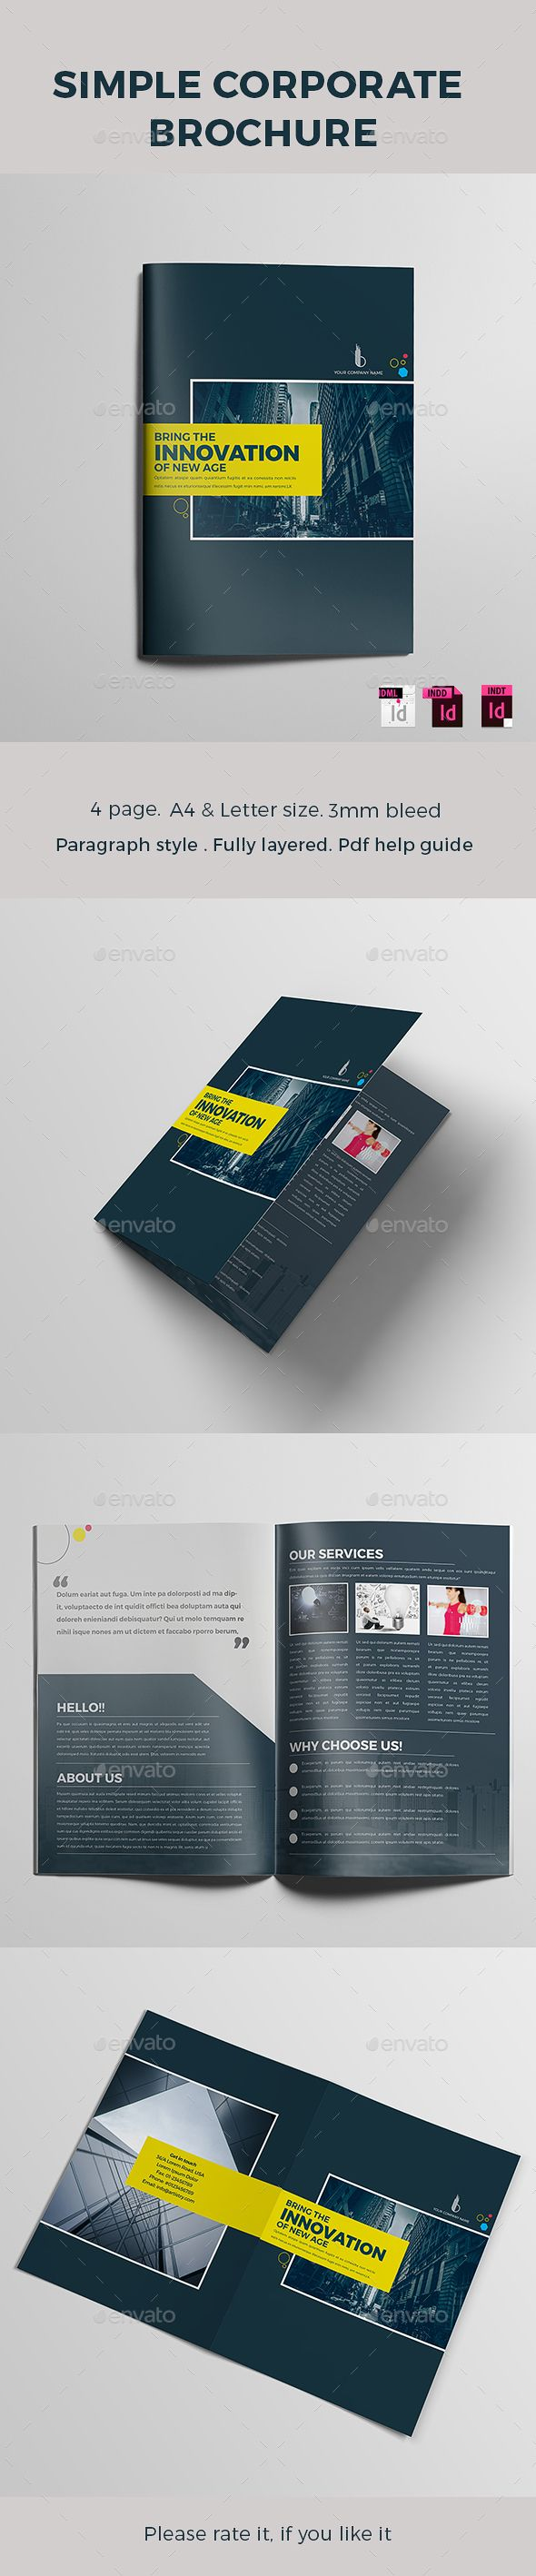 Buy Simple Corporate Brochure by ARTushar on